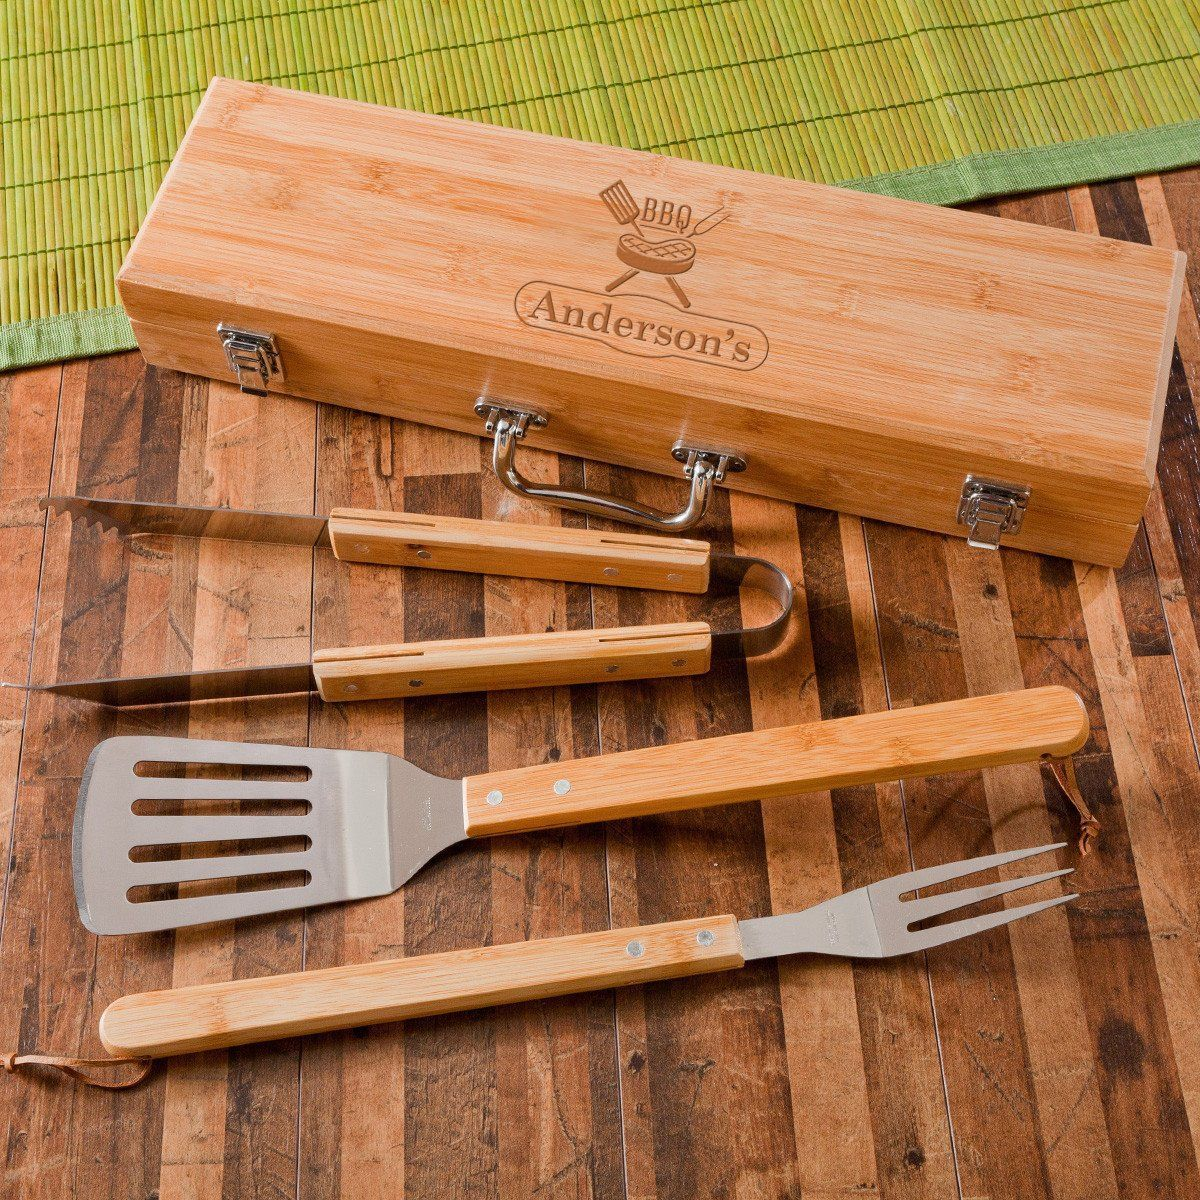 Personalized-Grilling-BBQ-Set-with-Bamboo-Case